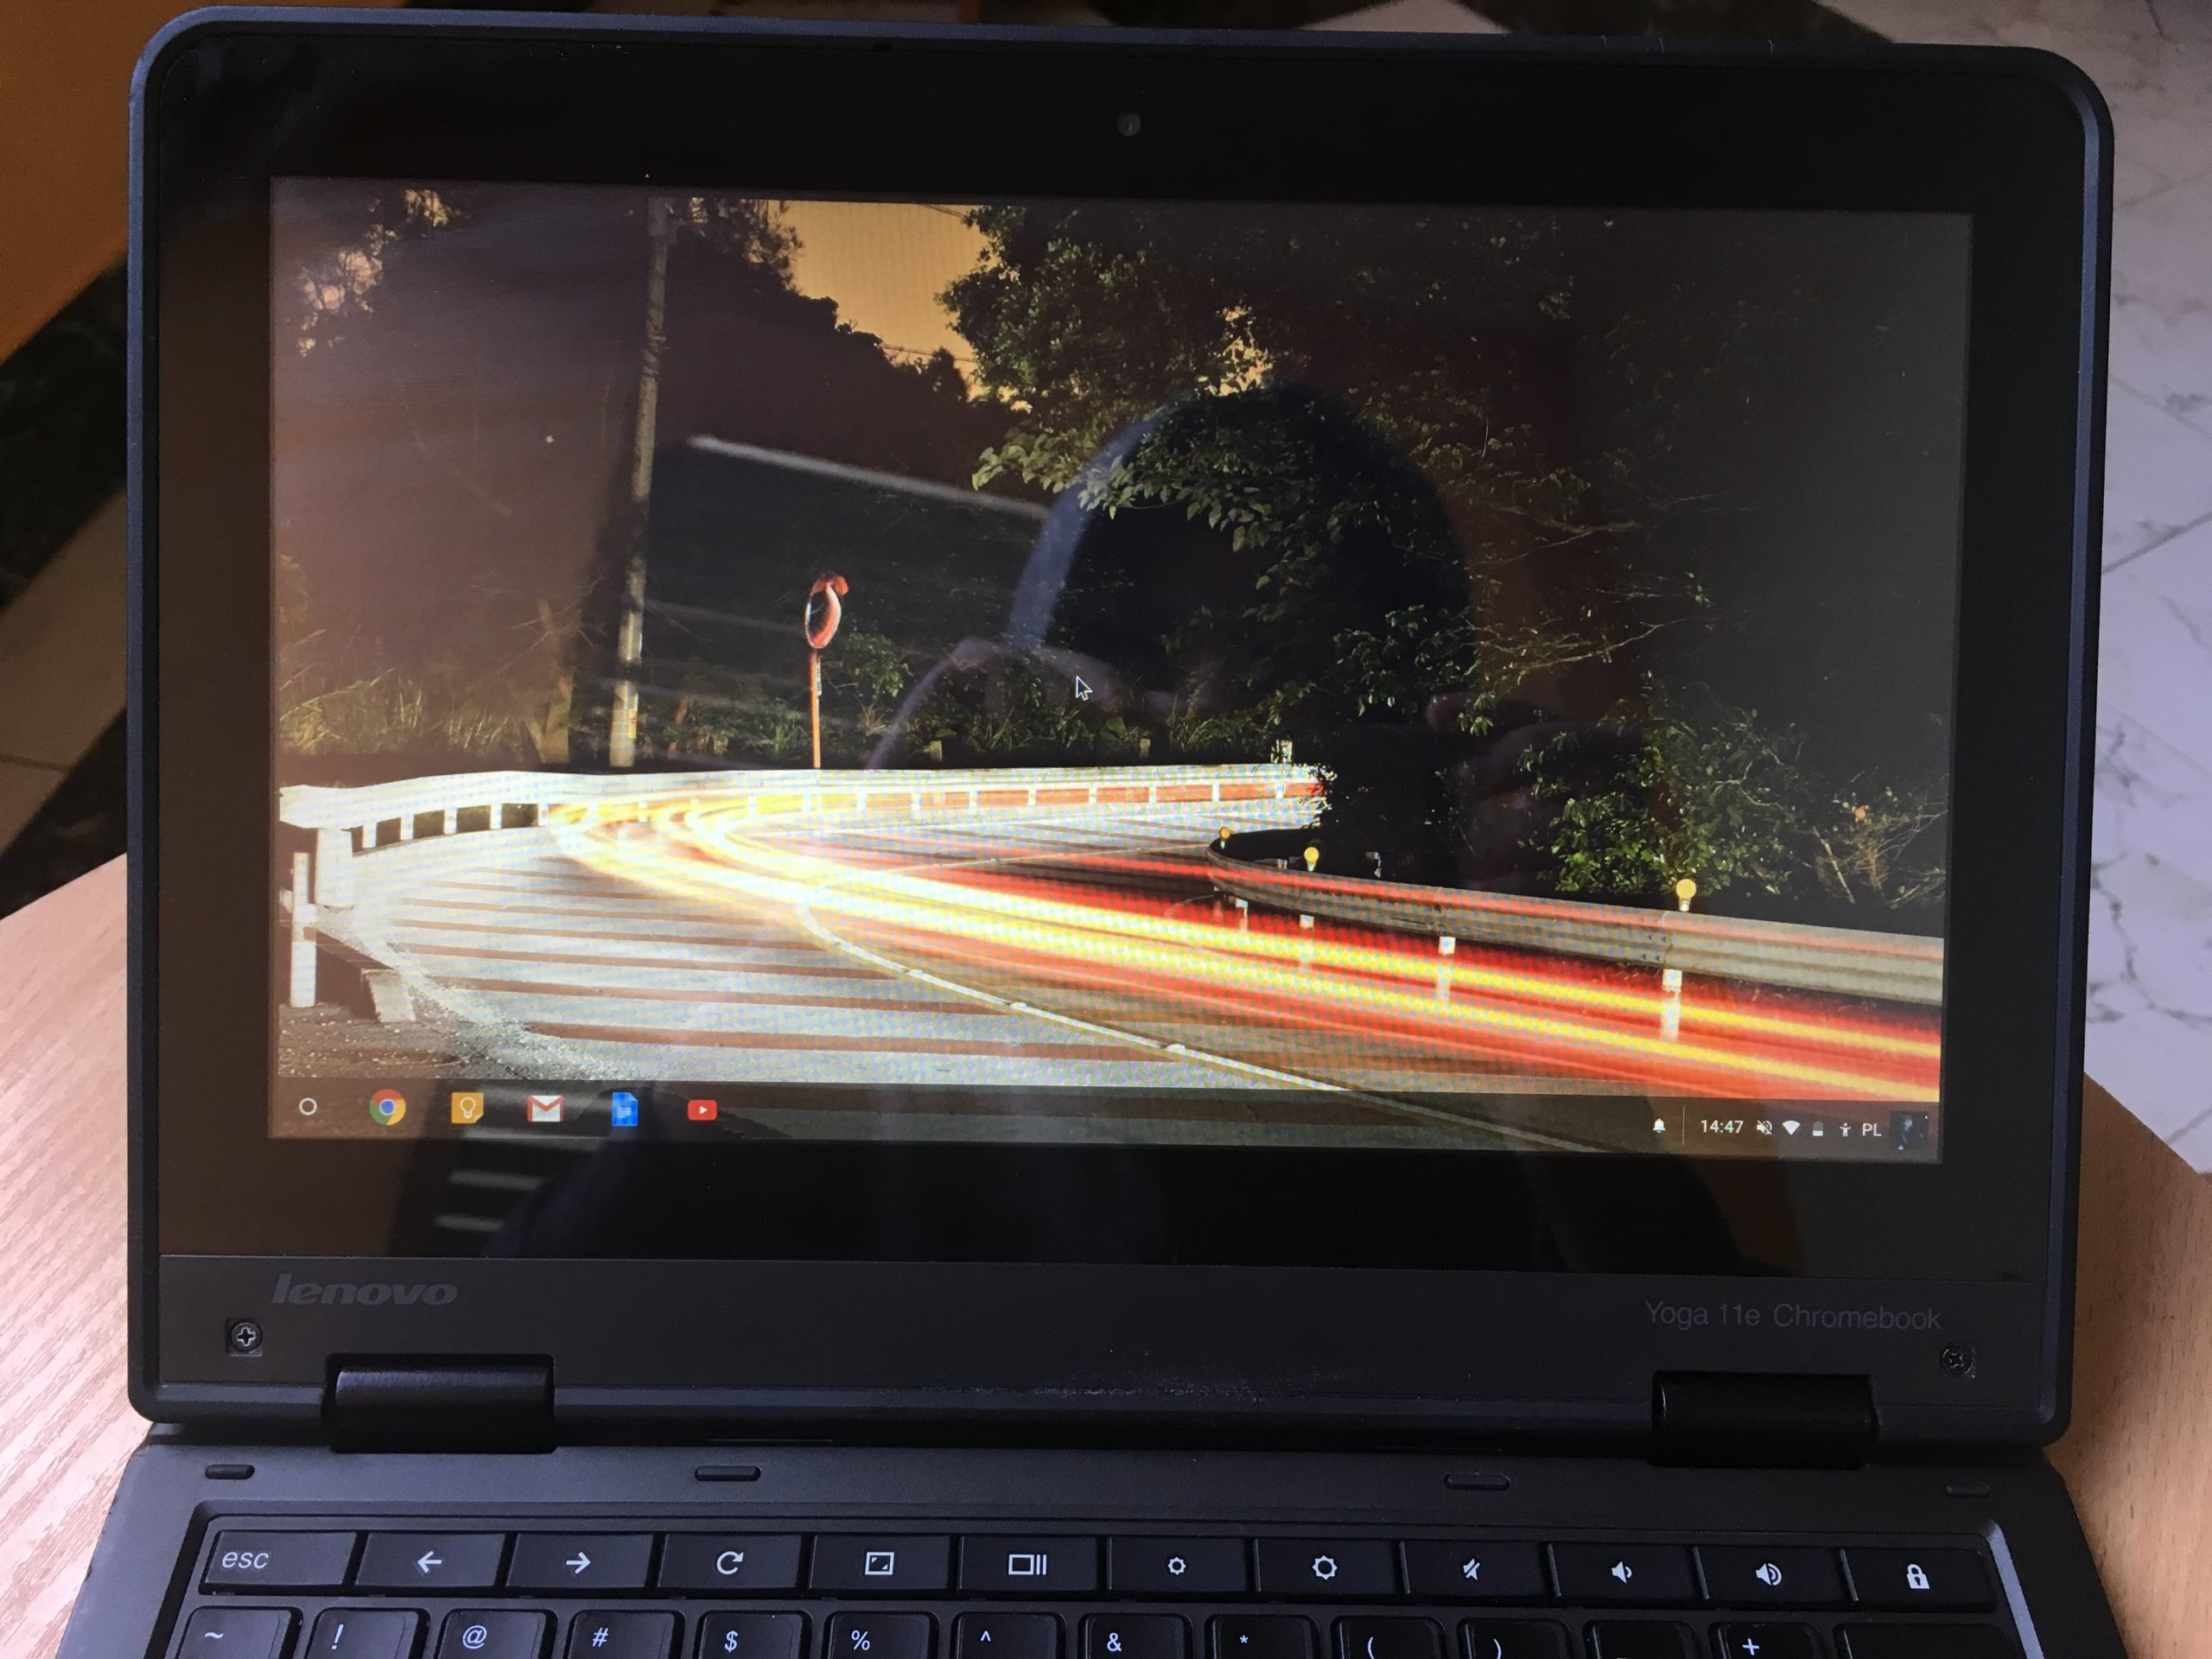 Lenovo Yoga Chromebook 11e IPS 4gb bat 6h 4core